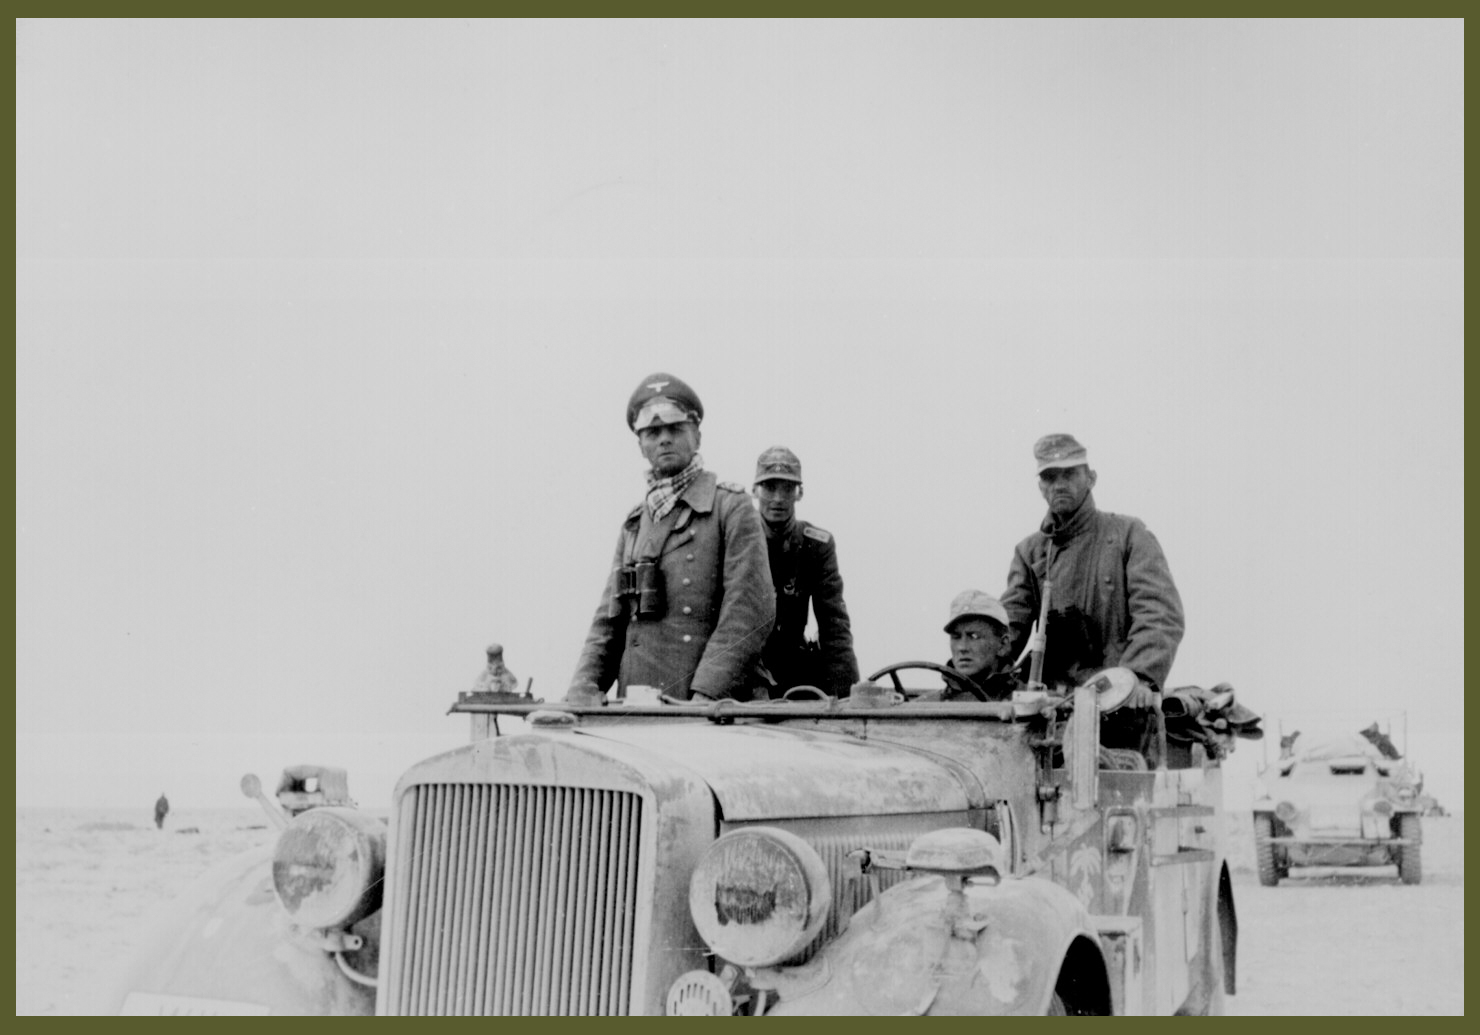 Gen. Erwin Rommel with the 7th Panzer Division between Tobruk and Sidi Omar Lybia 1941